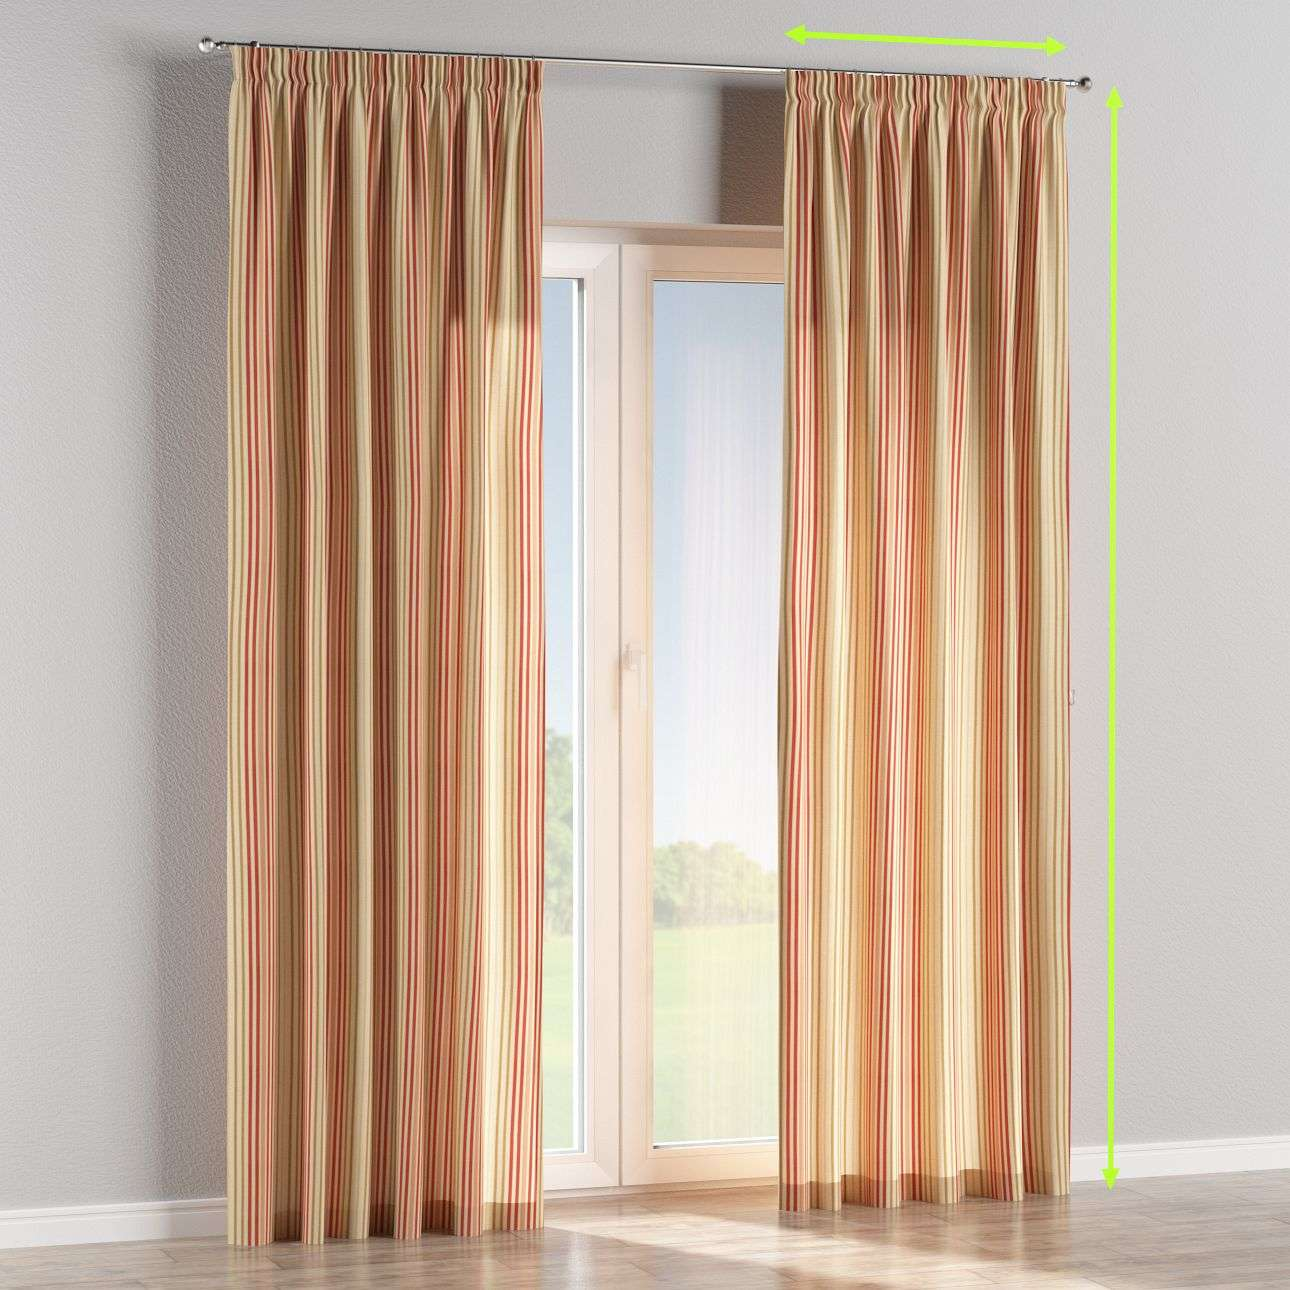 Pencil pleat curtains in collection Londres, fabric: 122-05